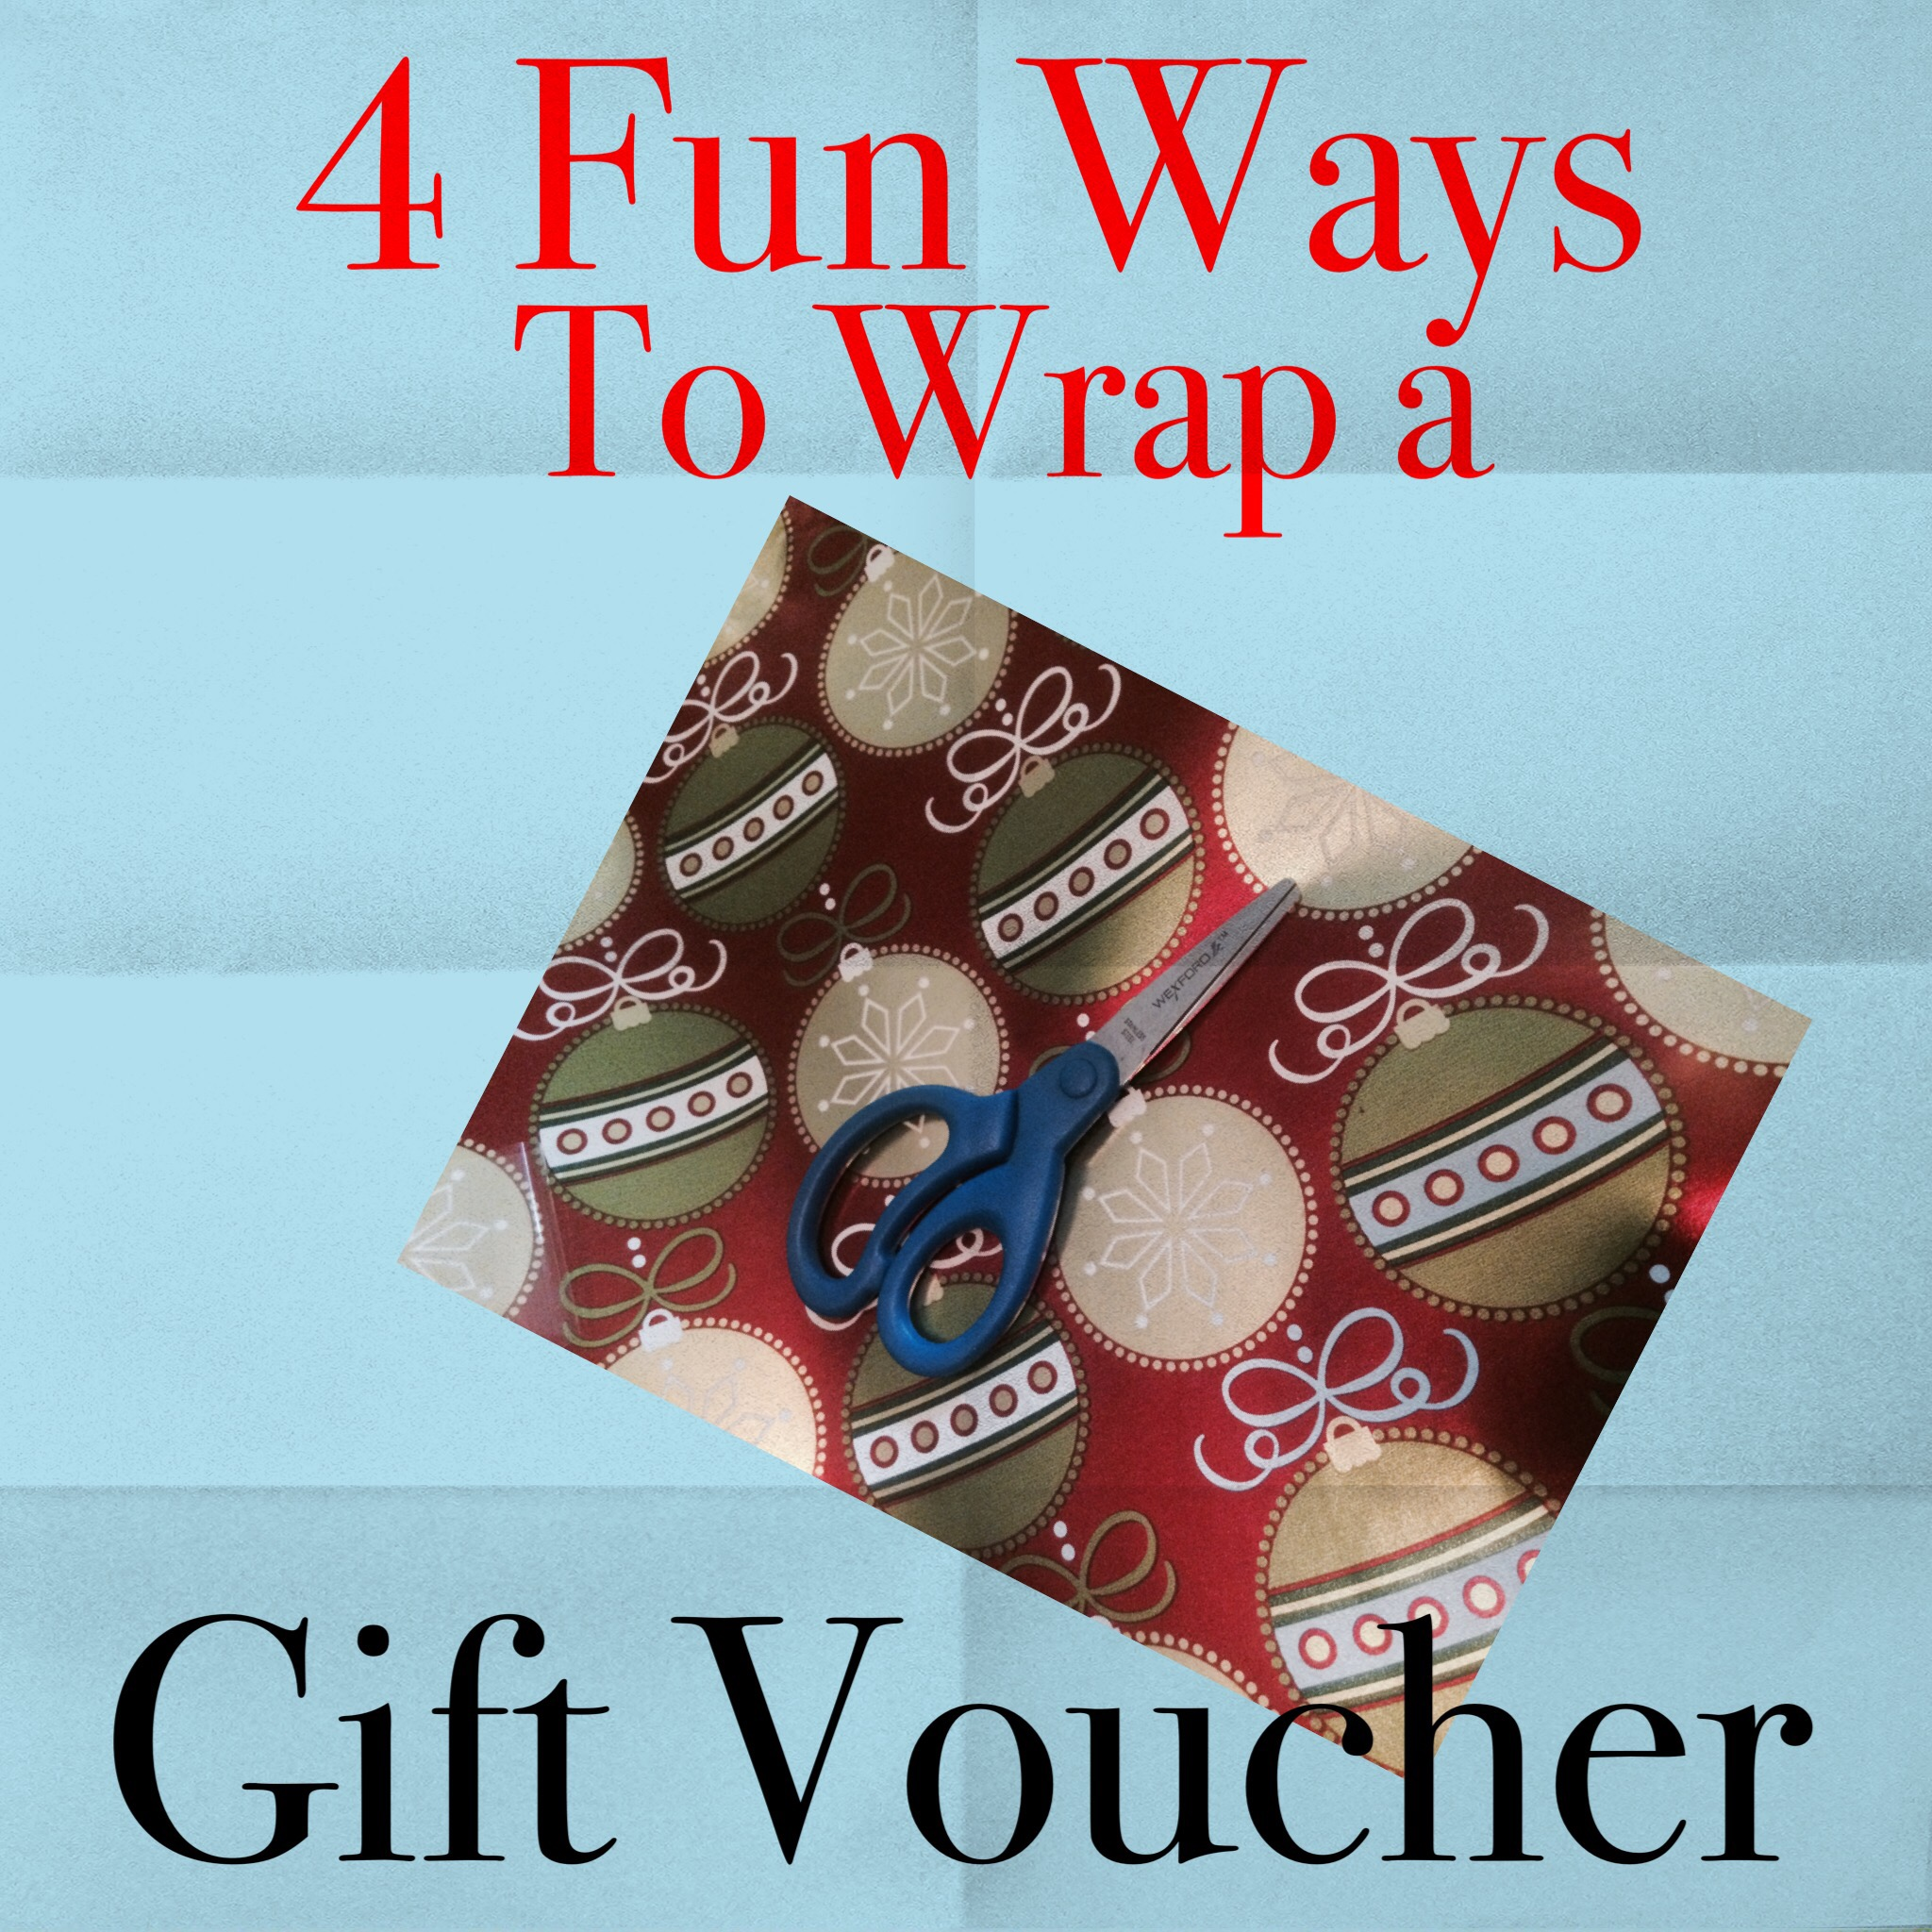 Gifting An Experience 17 Non Toy Gift Ideas And 4 Fun Way To Wrap Them Clever Housewife